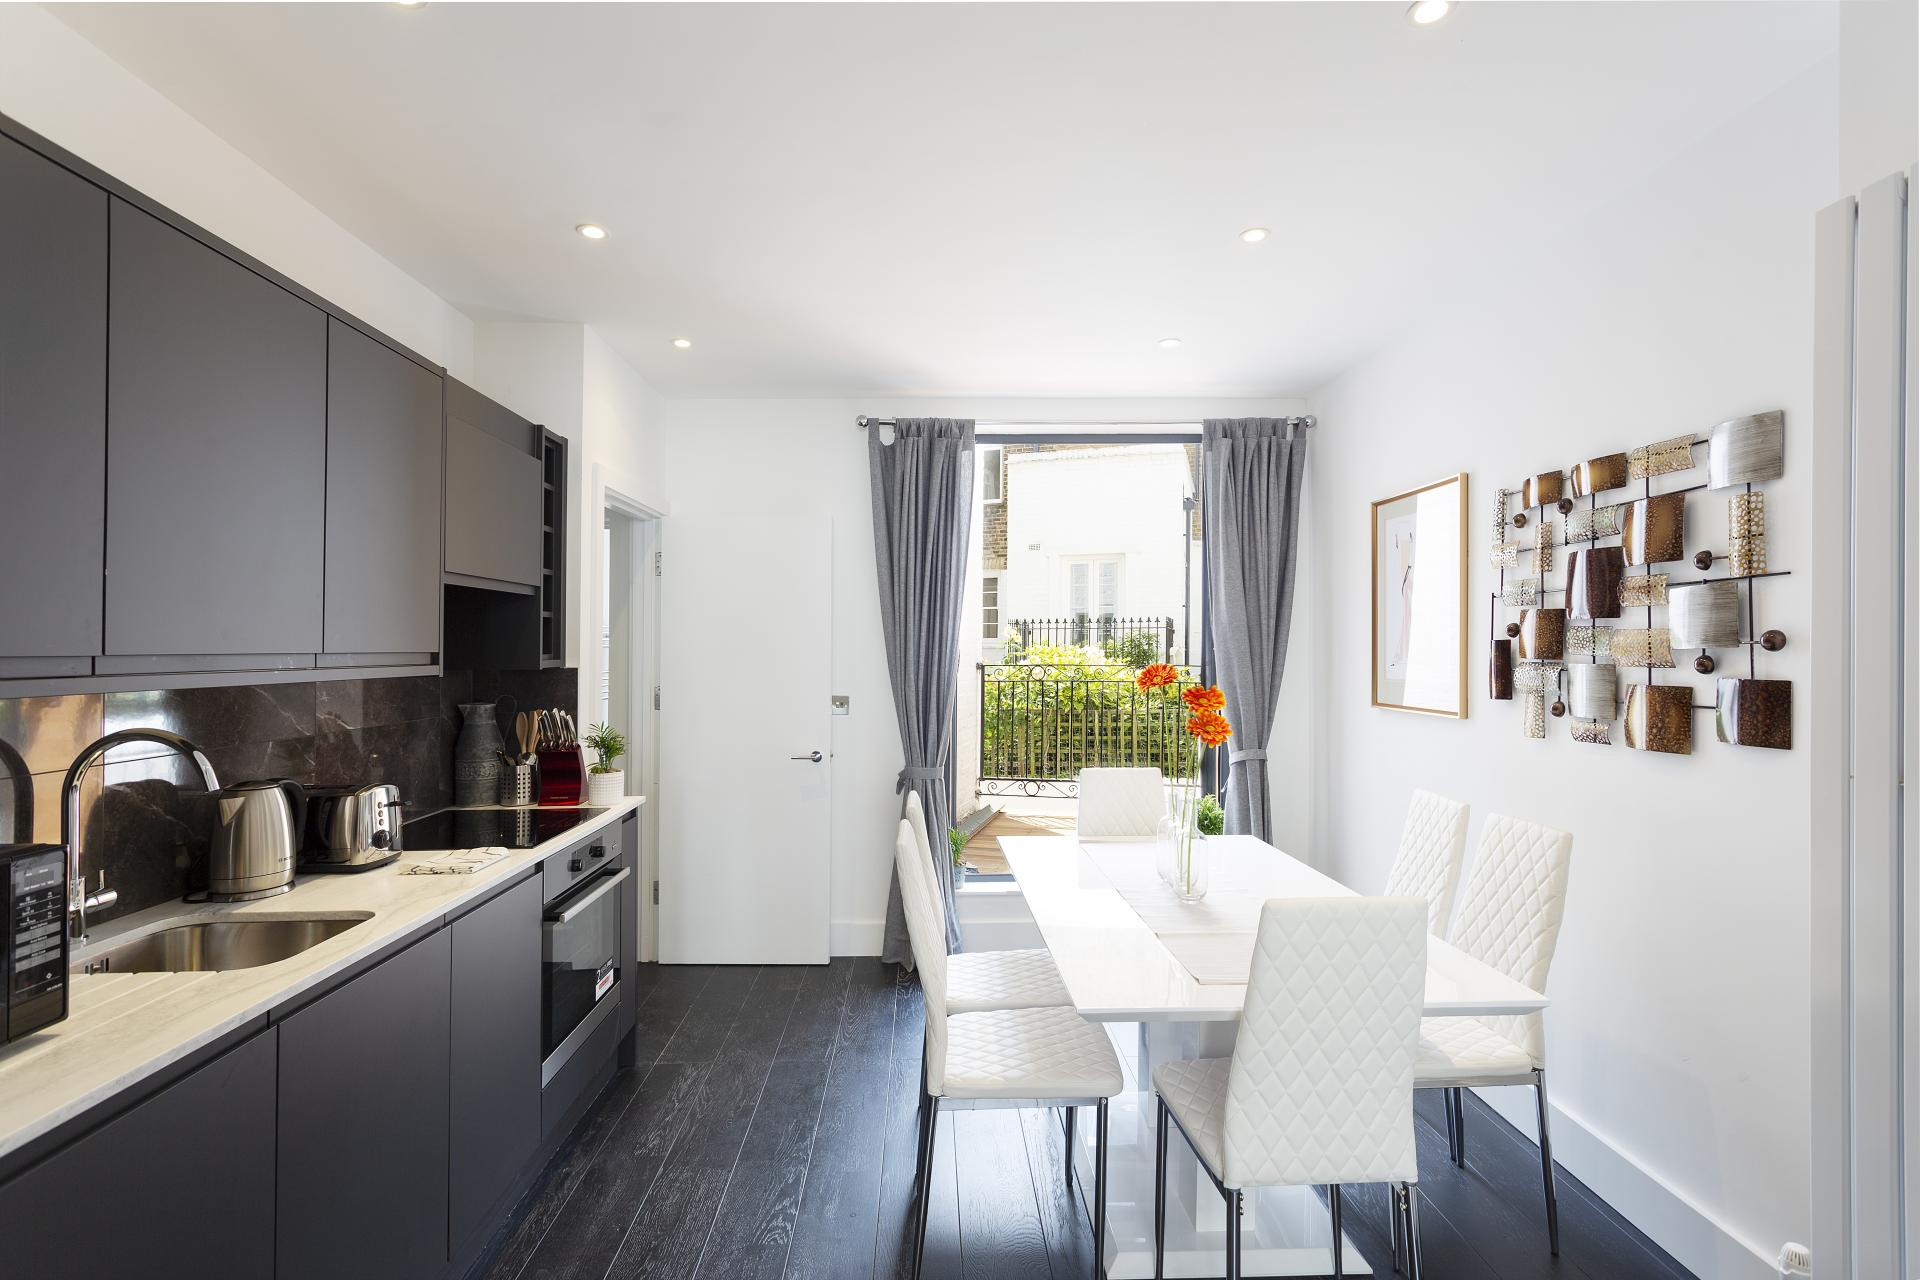 Kitchen 1 at Luxury Knightsbridge House, Knightsbridge, London - Citybase Apartments